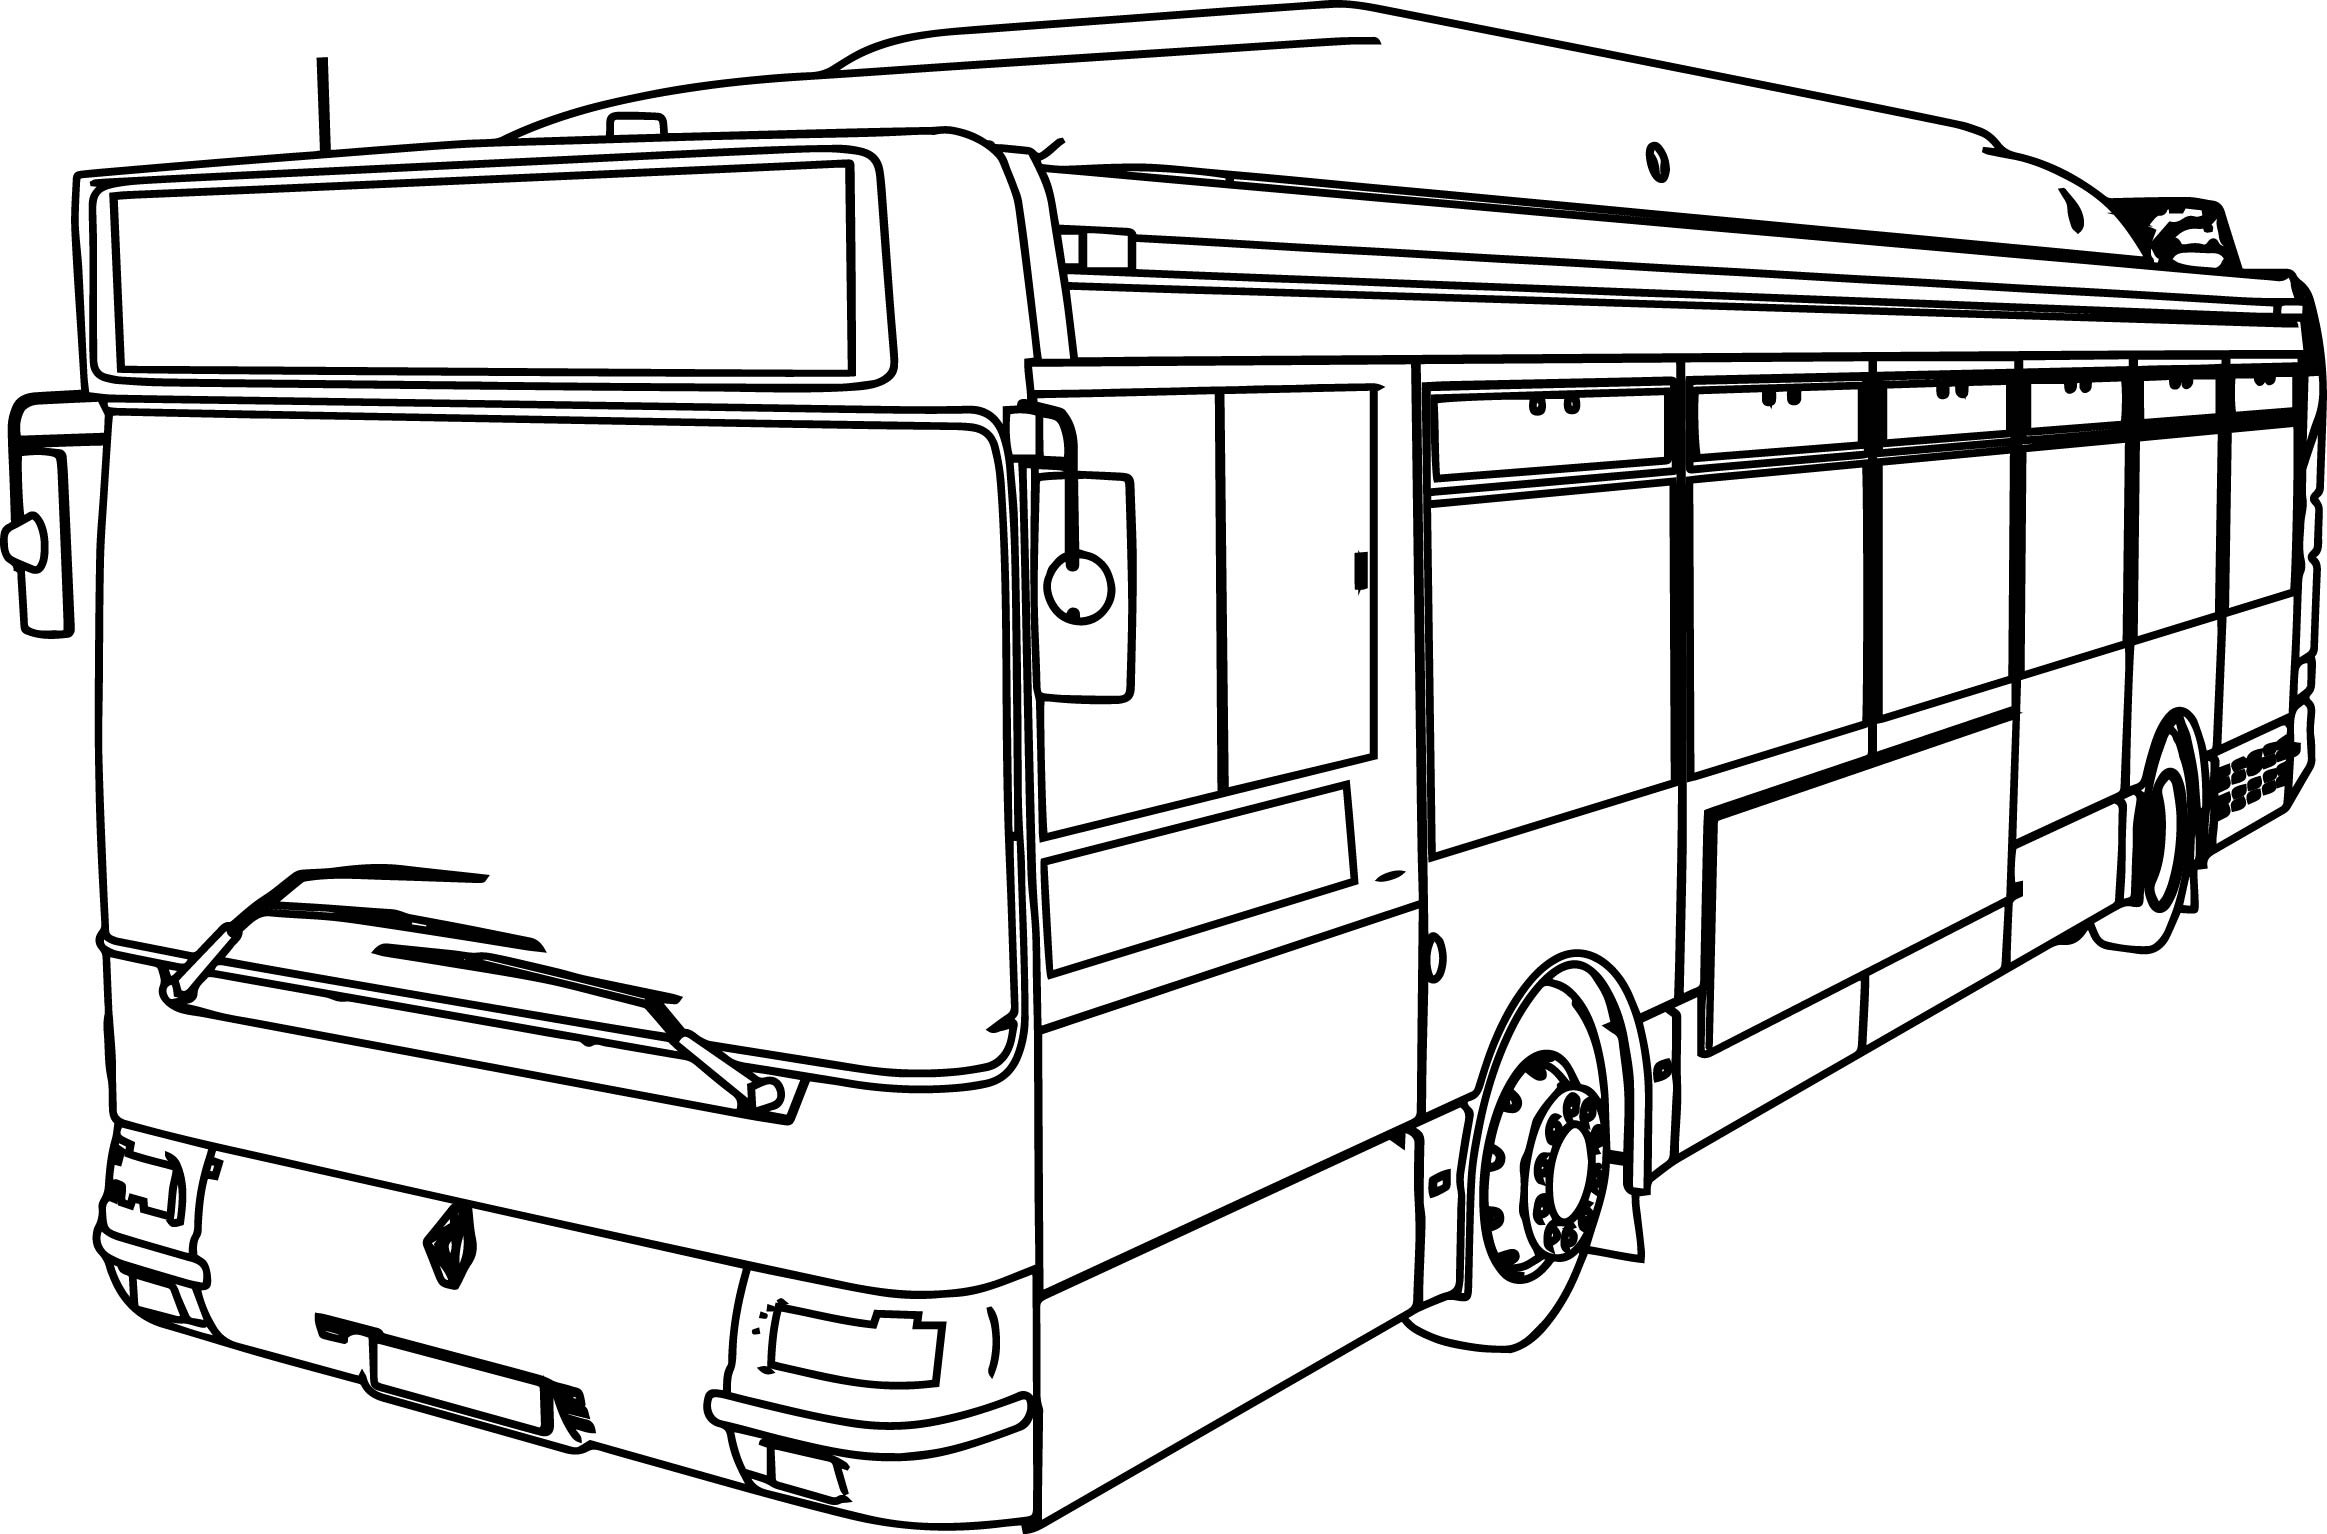 drawing of a bus double decker bus drawing at getdrawings free download of a bus drawing